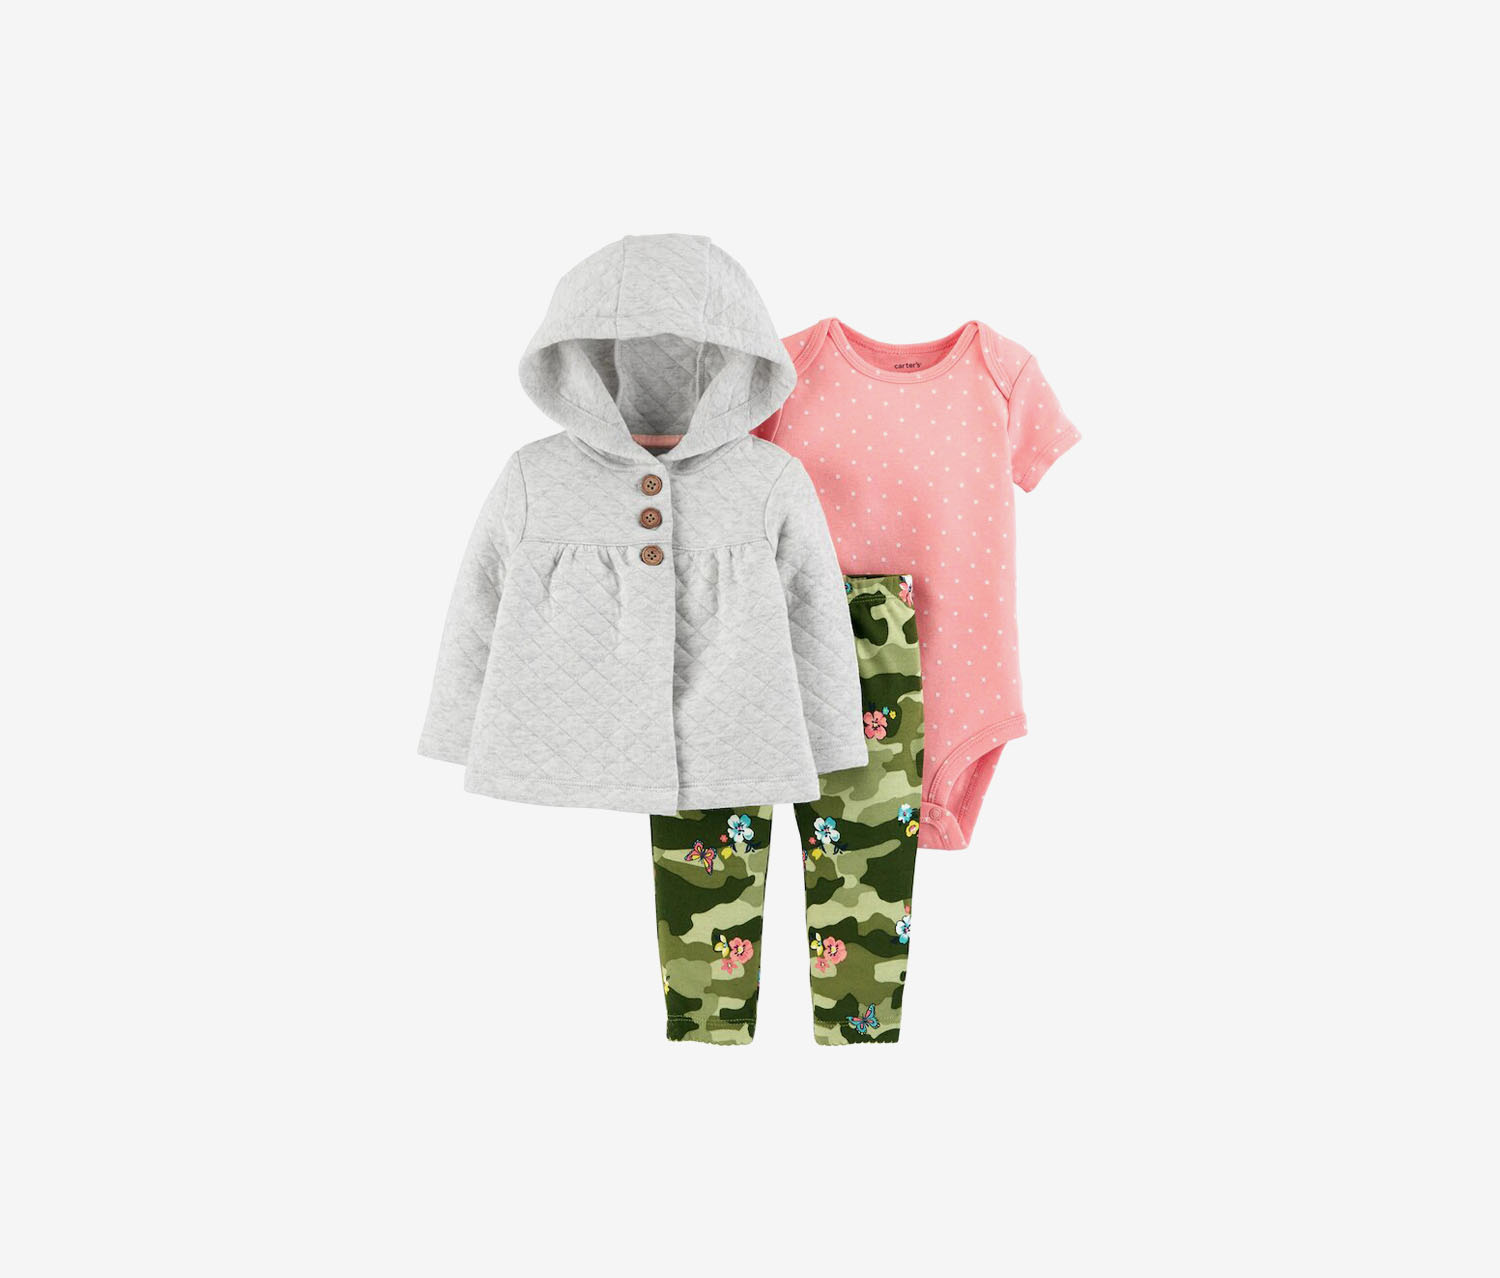 Infant Girls Camouflage & Heather Quilted Cardigan Set, Pink/Olive/Gray